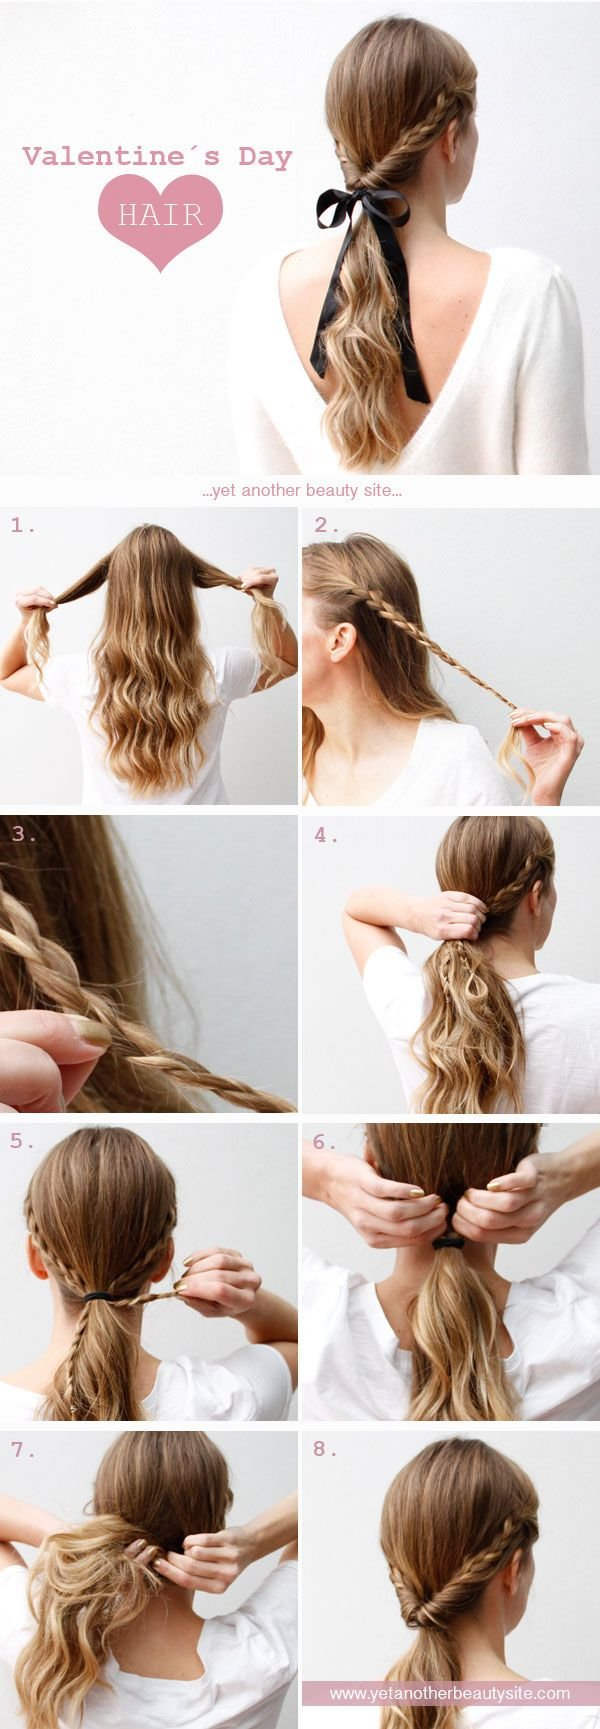 Free Wear This Hair A Simple Braided Beauty Wallpaper